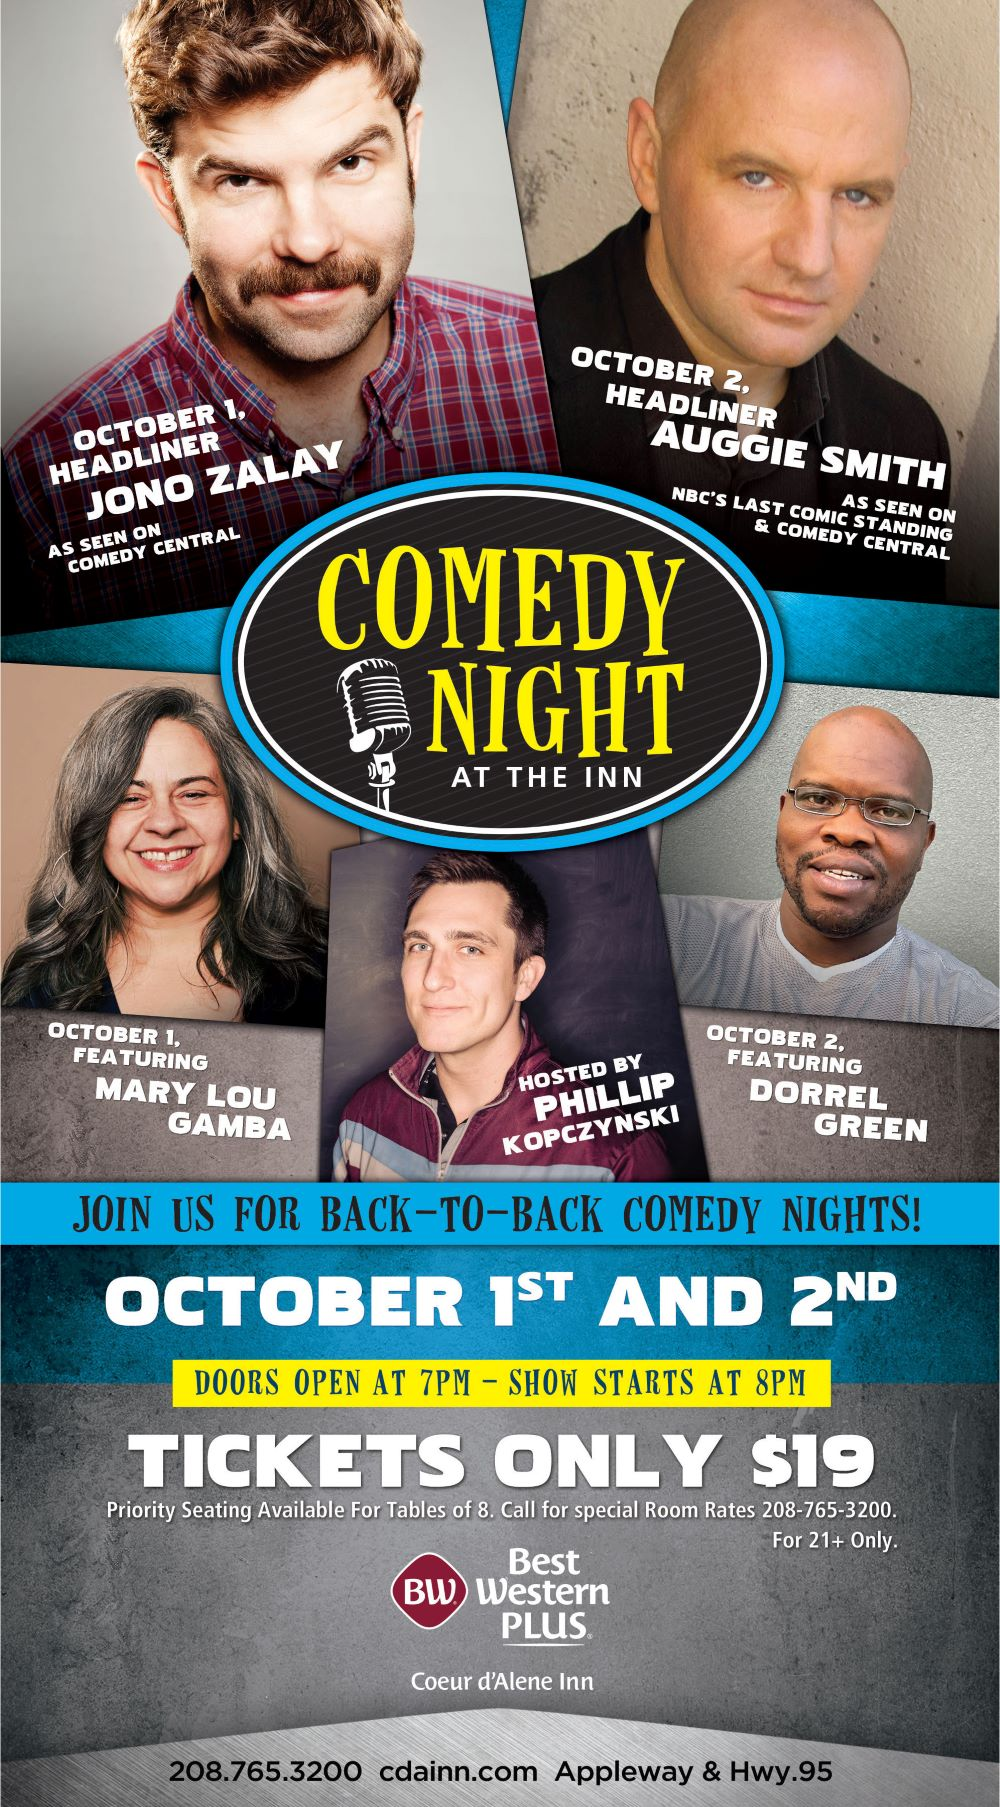 Comedy Night at the Inn. Join us for Back to Back Comedy Nights! October 1st and 2nd. Doors Open at 7pm - Show starts at 8pm. Tickets only $19. For 21+ Only. Priority seating available for tables of 8. All other seating is first come. Ask about our special Room Rates! 208-765-3200 cdainn.com Appleway & Hwy 95. October 1st Headliner Jono Zalay. As seen on Comedy Central. October 2nd Headliner, Auggie Smith. As seen on NBC's Last Comic Standing & Comedy Central. October 1st Featuring Mary Lou Gamba. October 2nd Featuring Dorell Green. Hosted by Phillip Kpzynski.